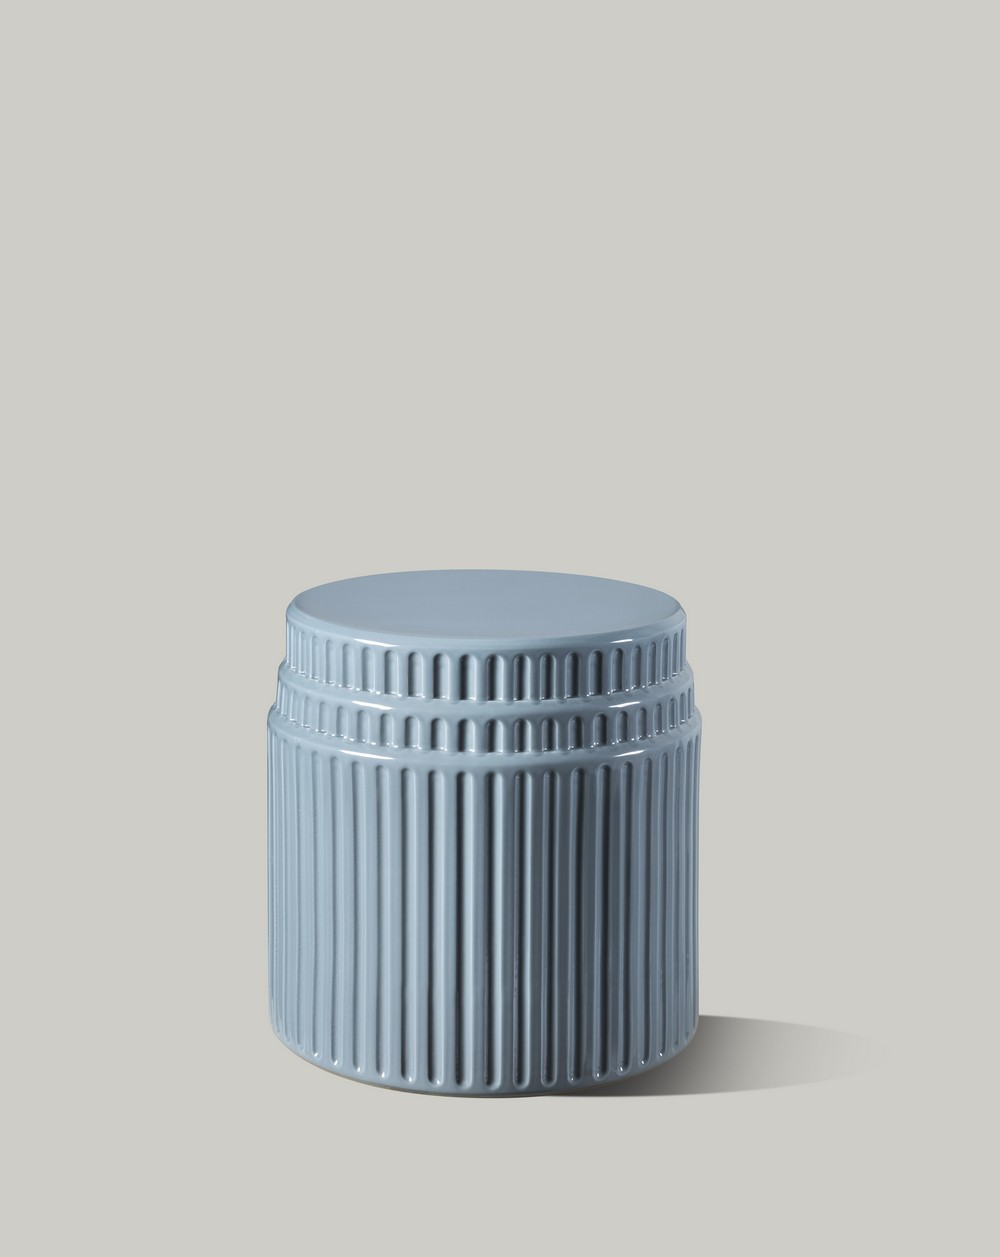 miniforms Miniforms has introduced a whole new collection: have a look! Kolos High Blue gray